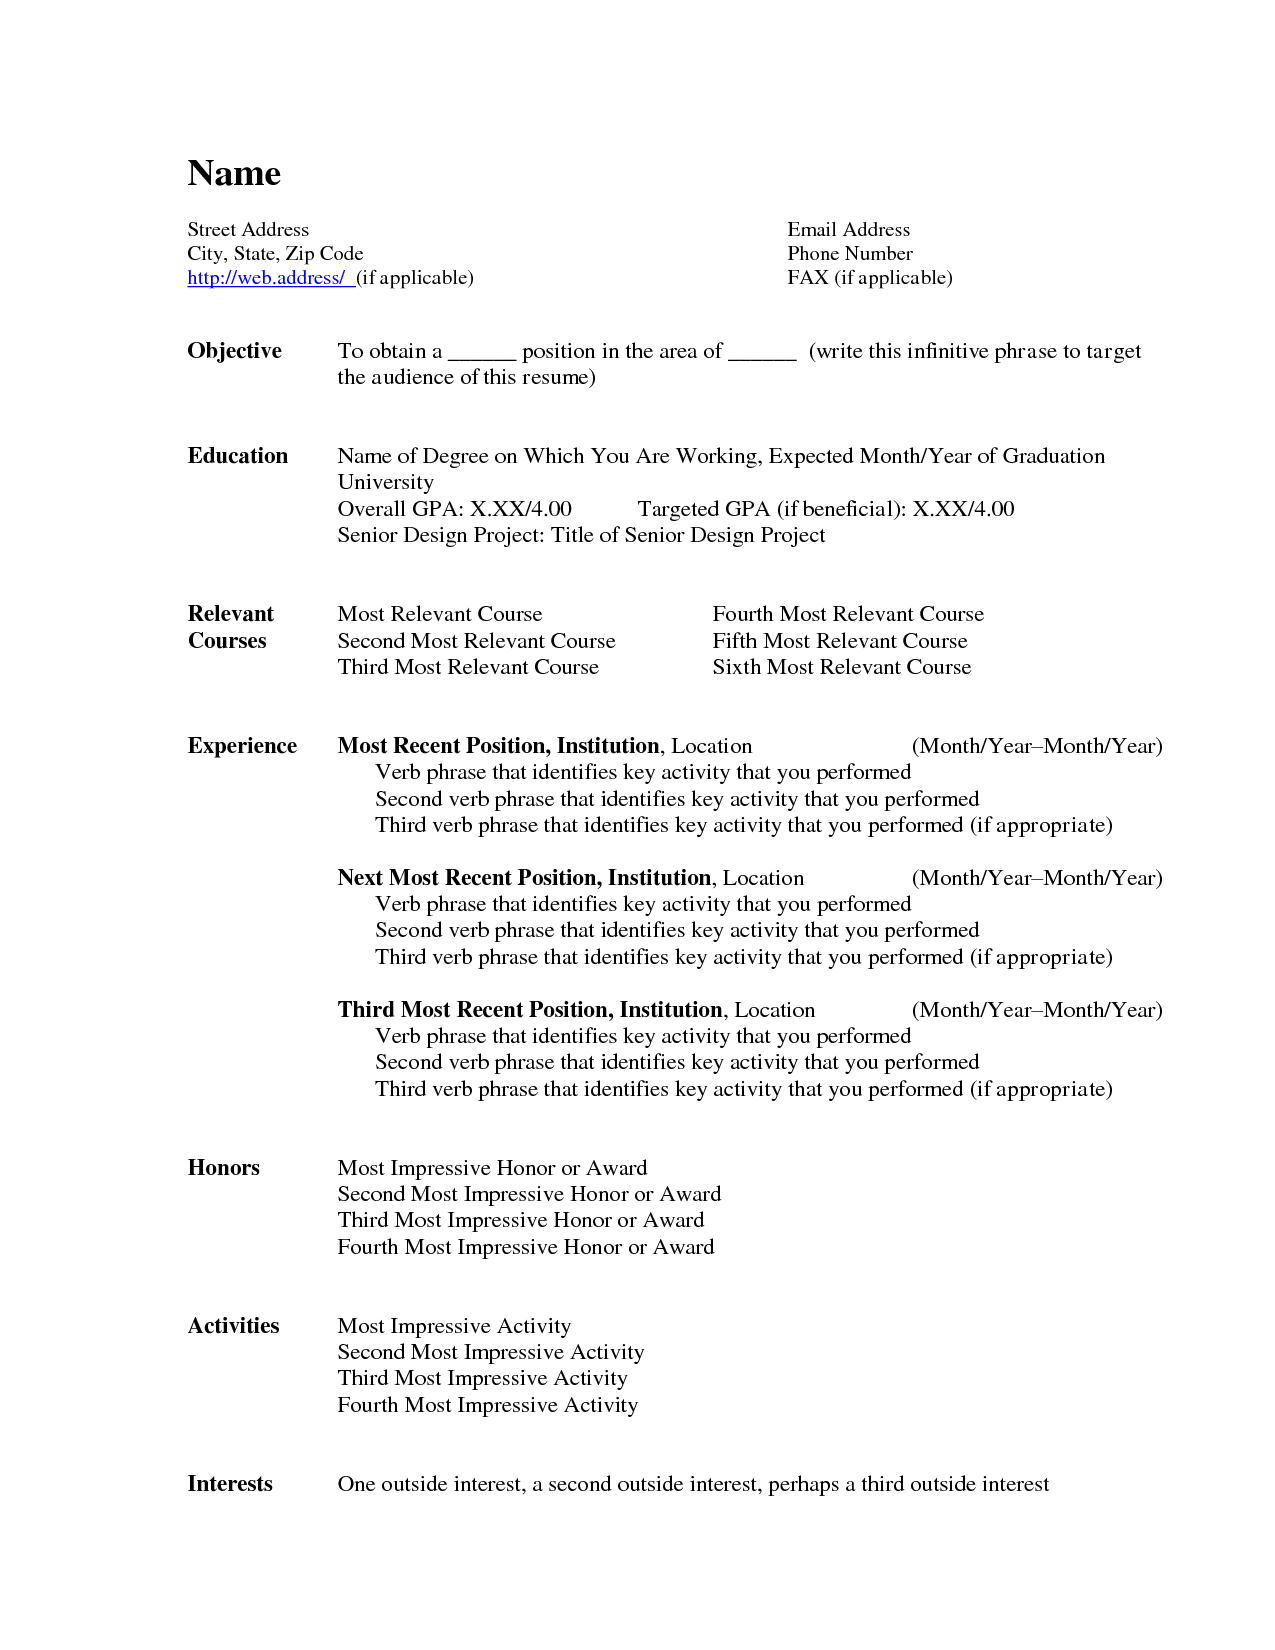 Microsoft Word Resume Template 2015 2